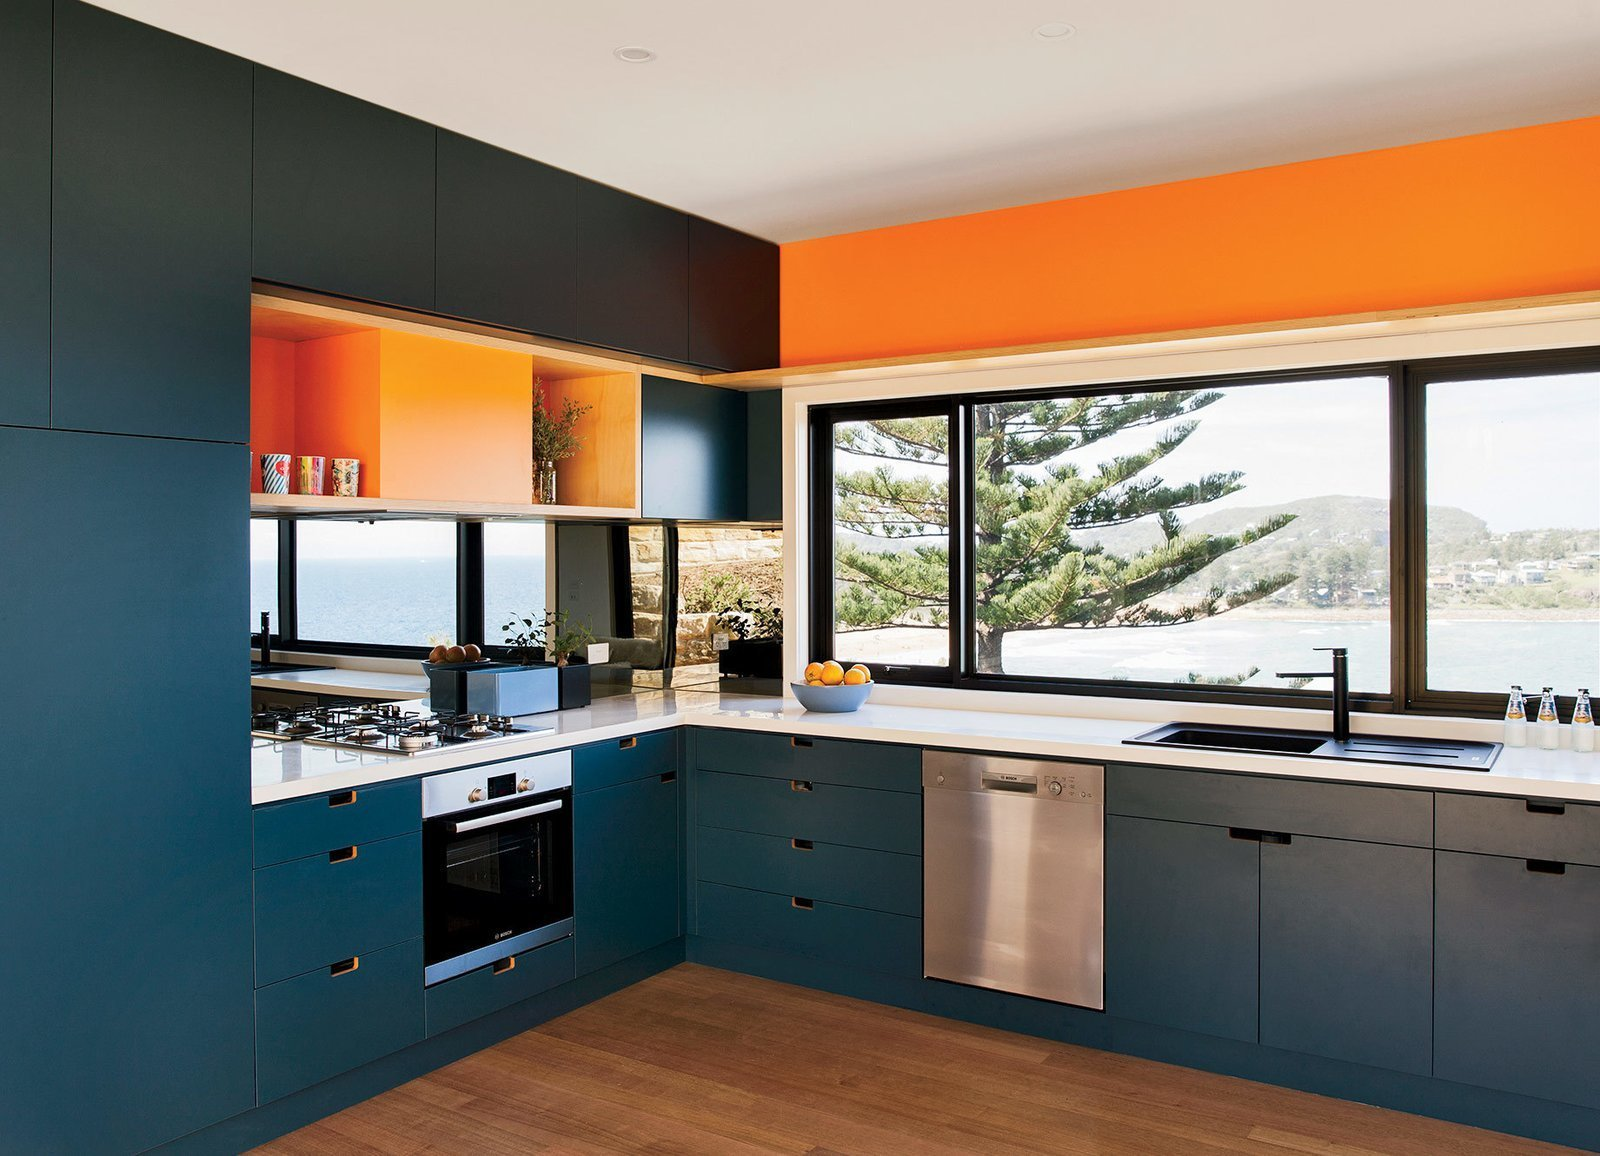 Articles About 6 Great Appliances Small Kitchens On Dwell Com Dwell